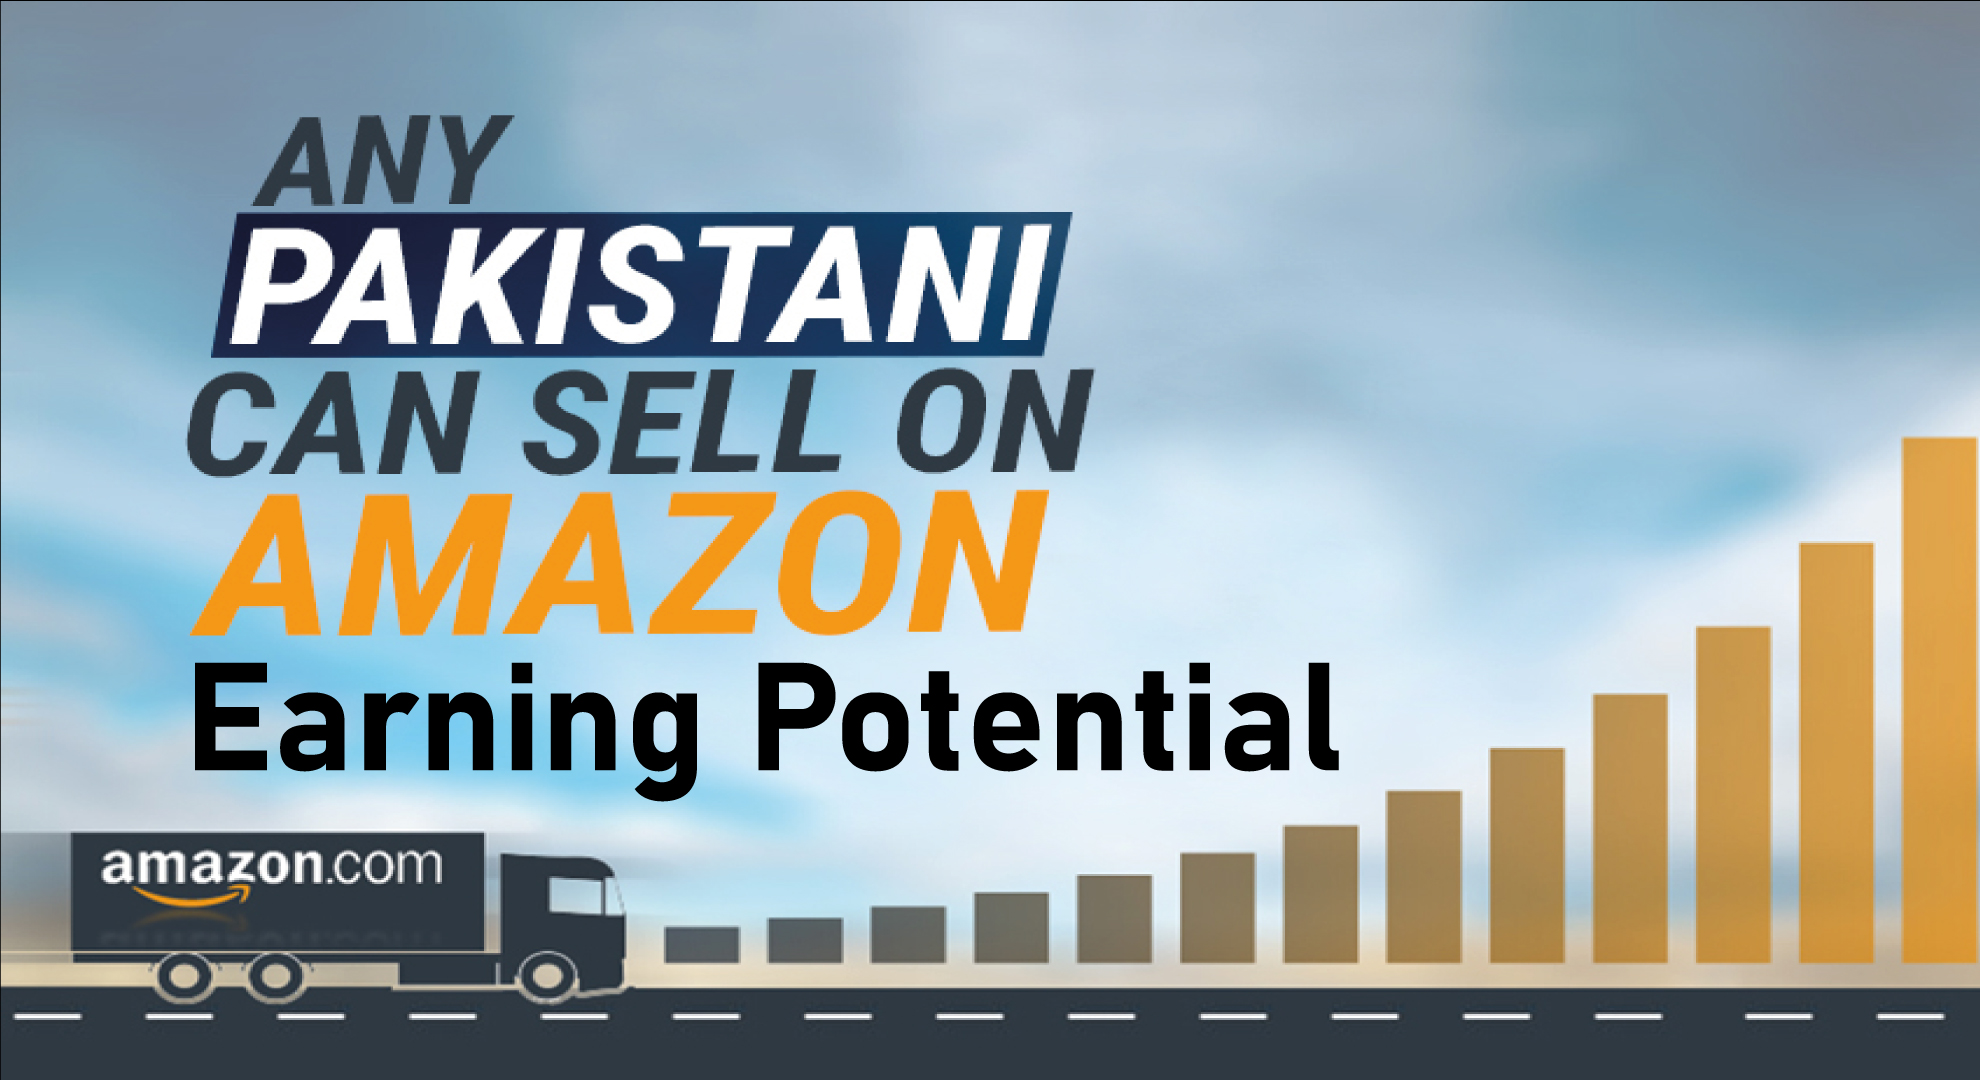 What-Is-The-Earning-Potential-Of-An-Amazon-FBA-Business-In-Pakistannnnn